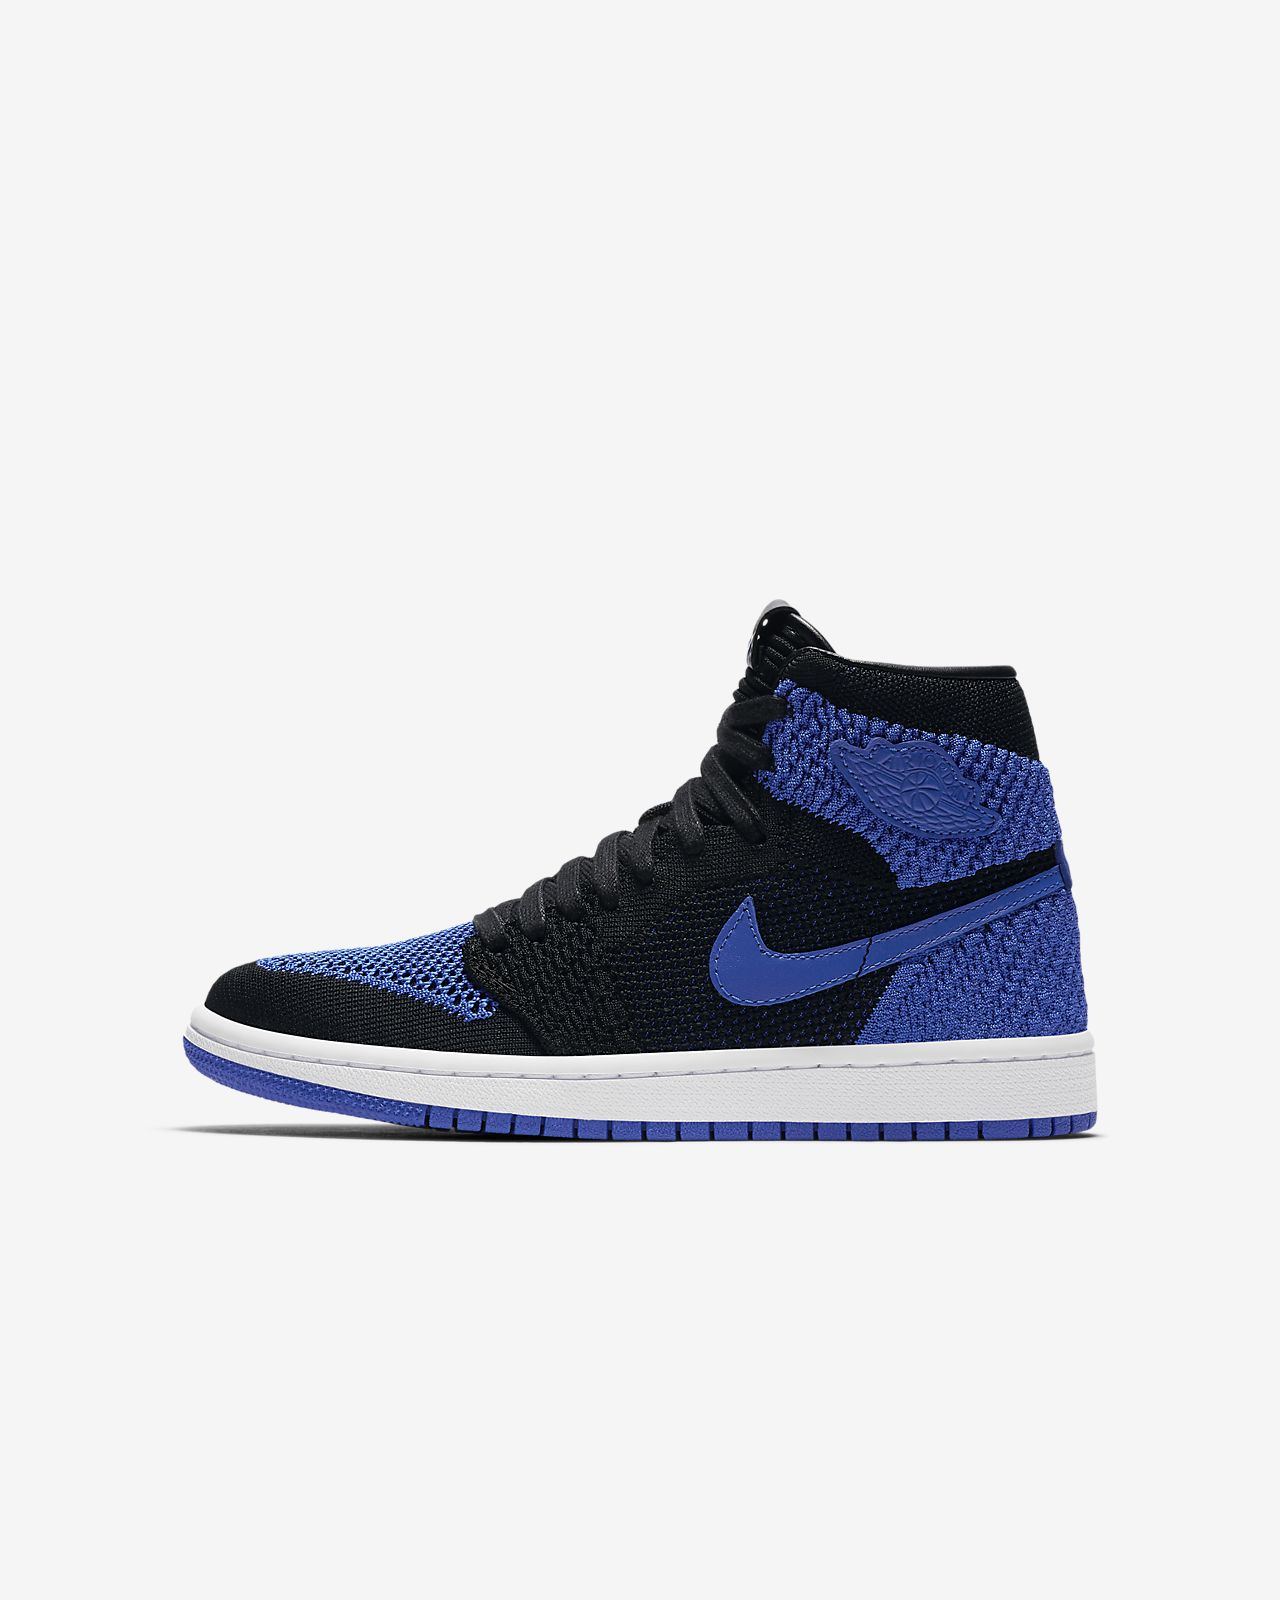 a9565ec2a409ea Air Jordan 1 Retro High Flyknit Older Kids  Shoe. Nike.com GB